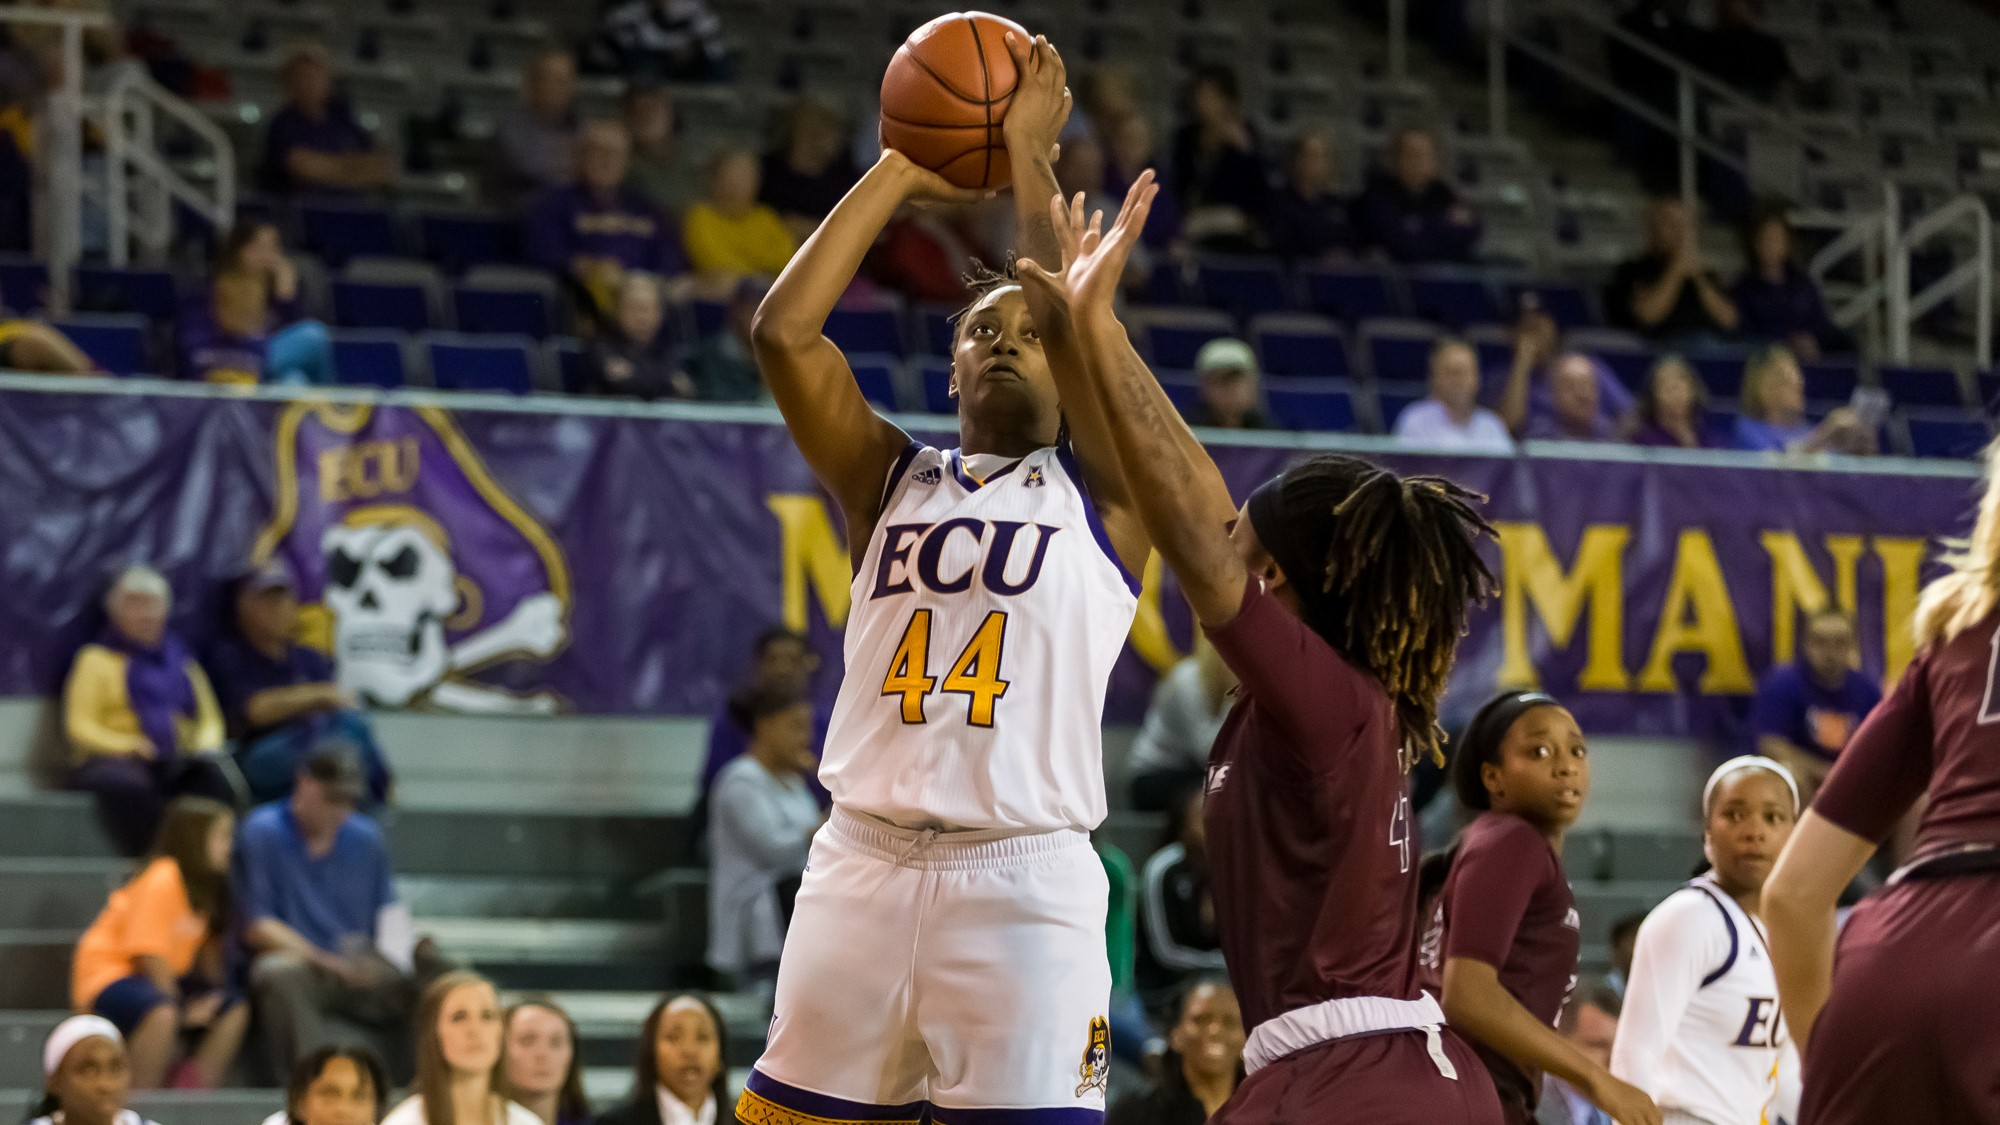 pirates host wake forest saturday afternoon - east carolina